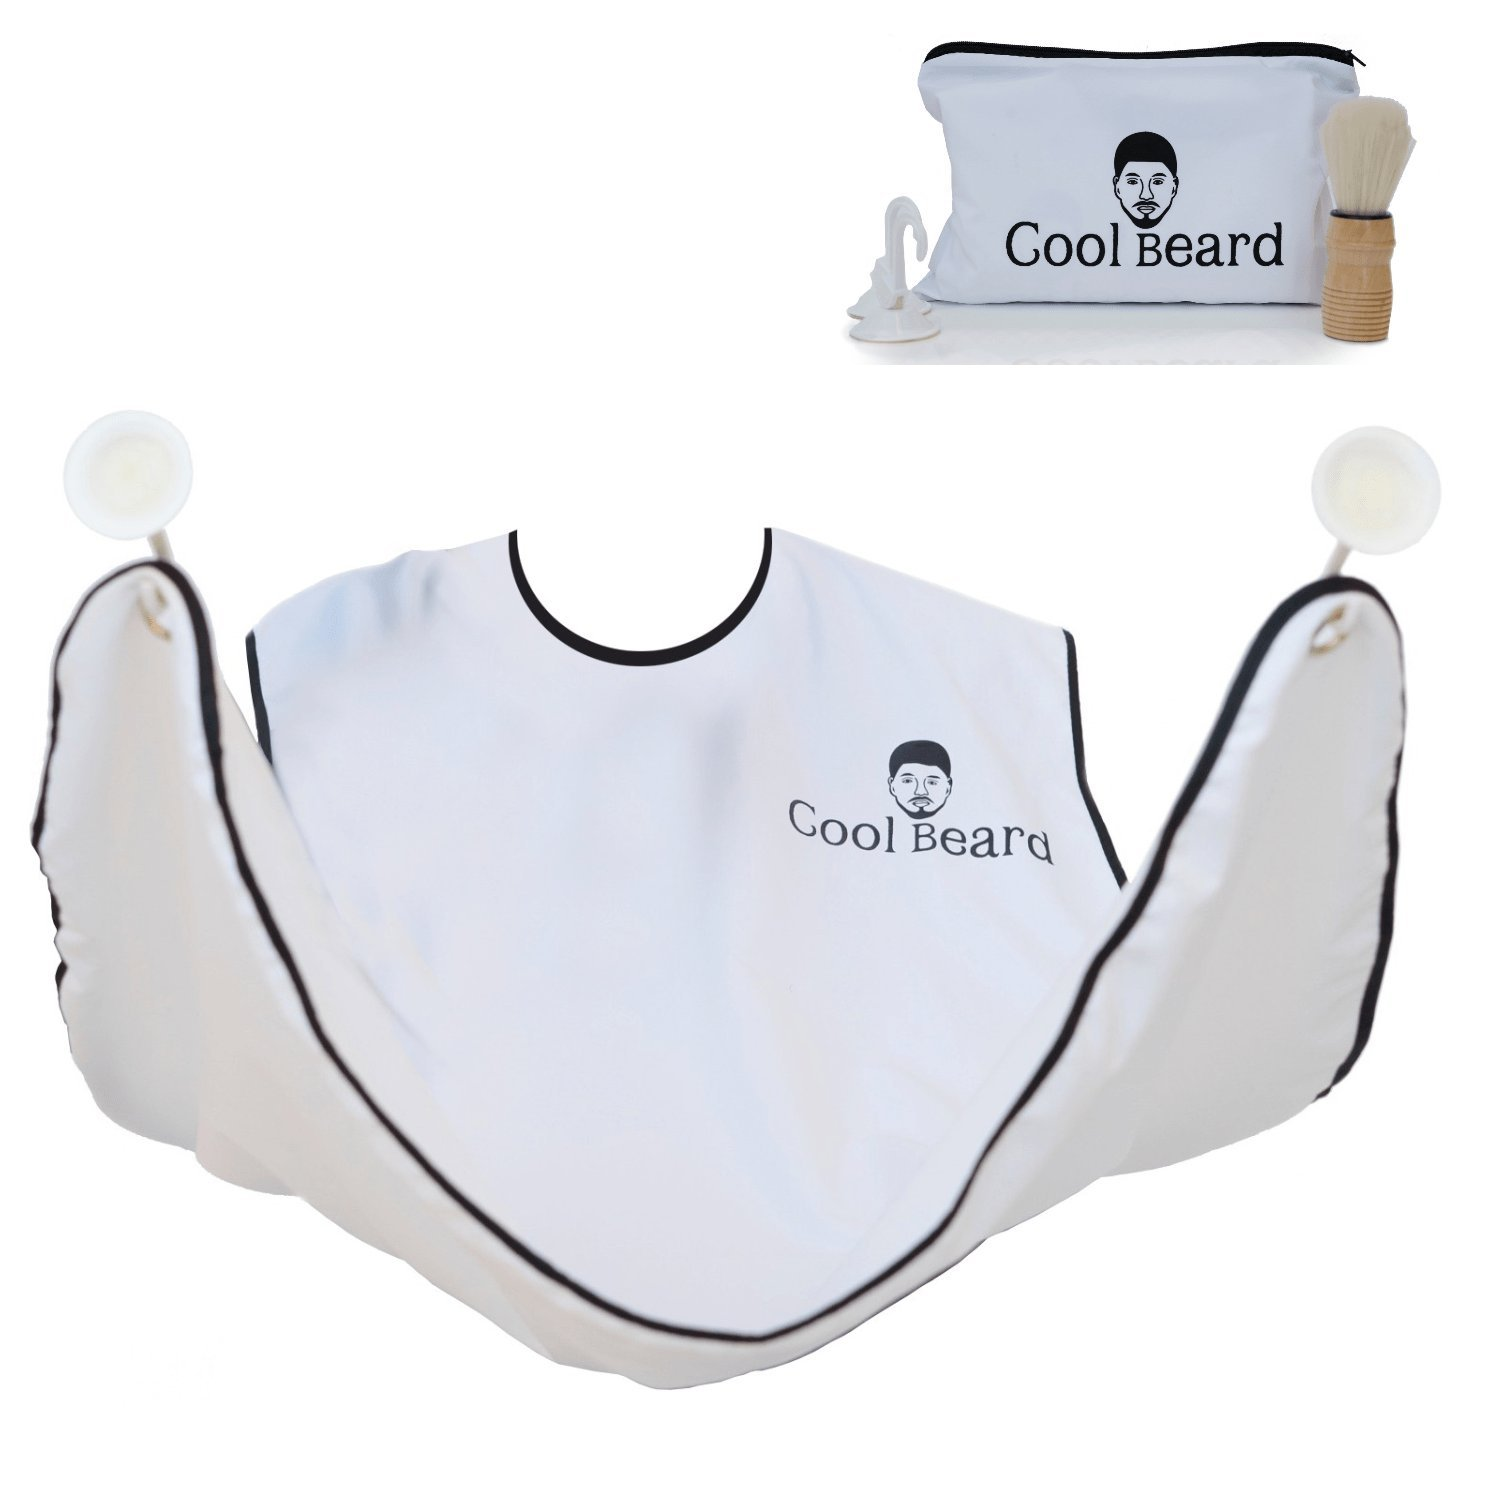 Beard Bib Apron Set- Shaving Cape Kit With Brush ,Travel Pouch and Suction Cups Catching All Trimming Hair For Men